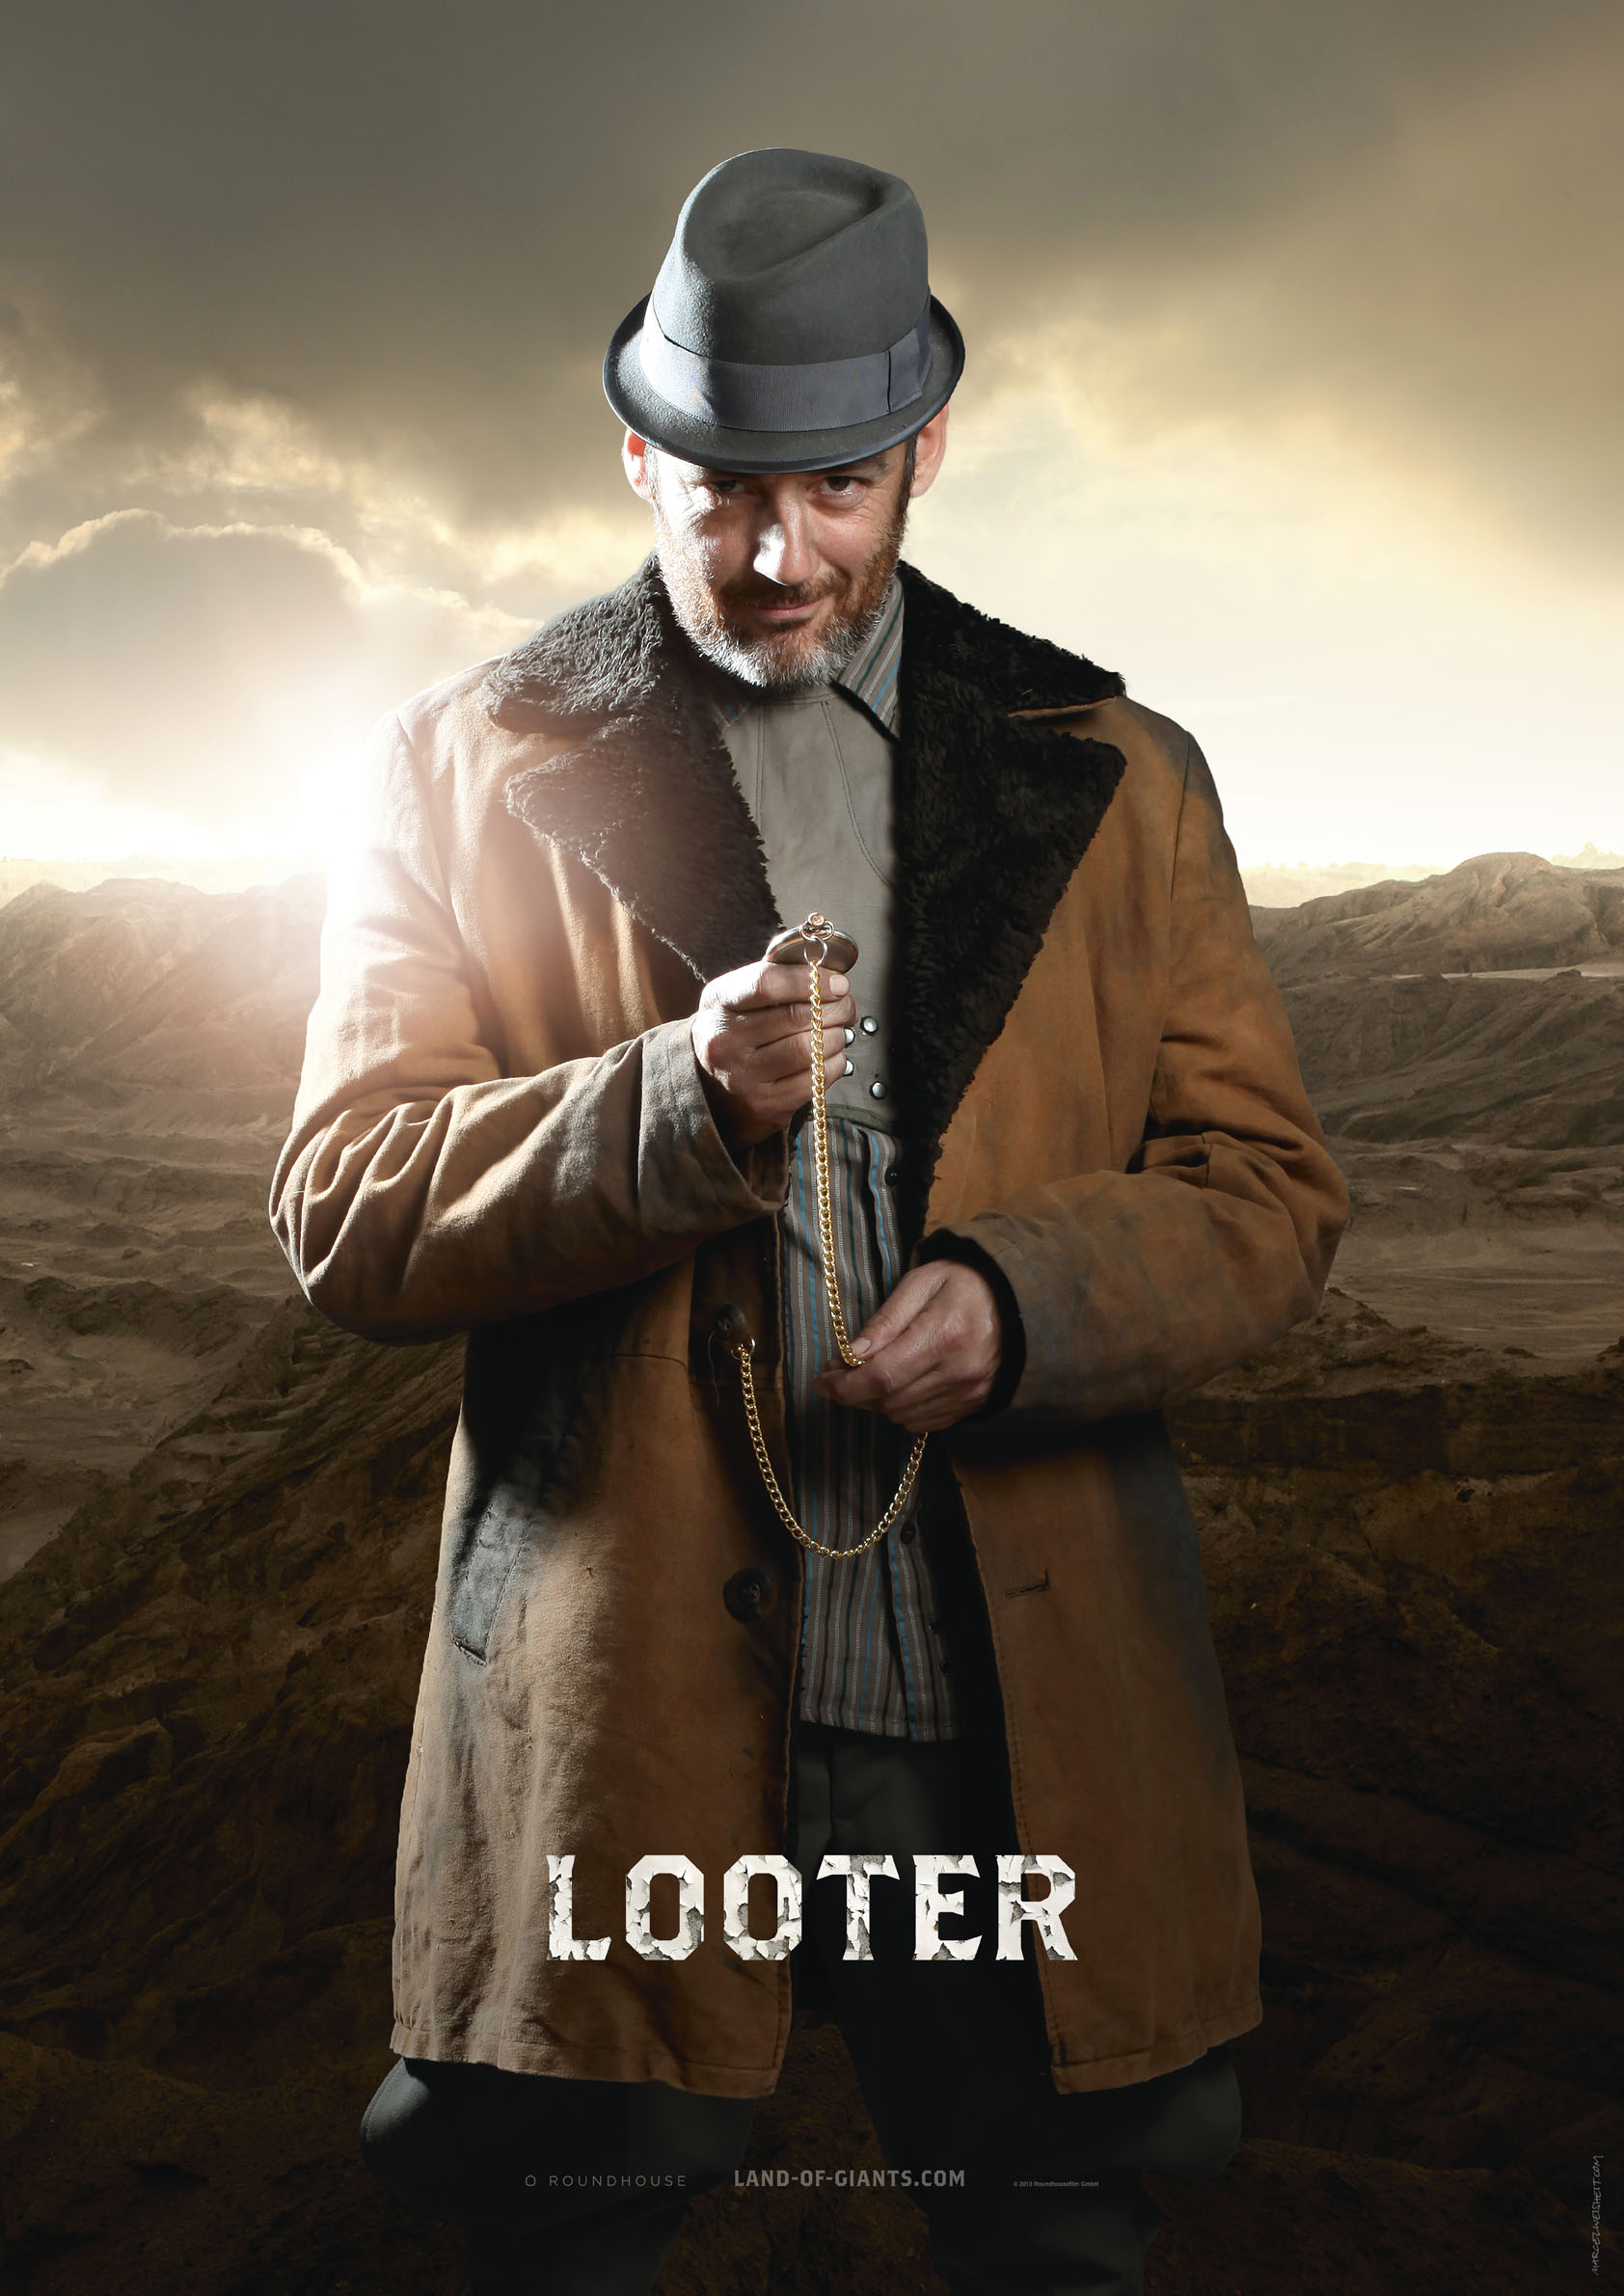 landofgiants_characterposter03_looter_594x840mm